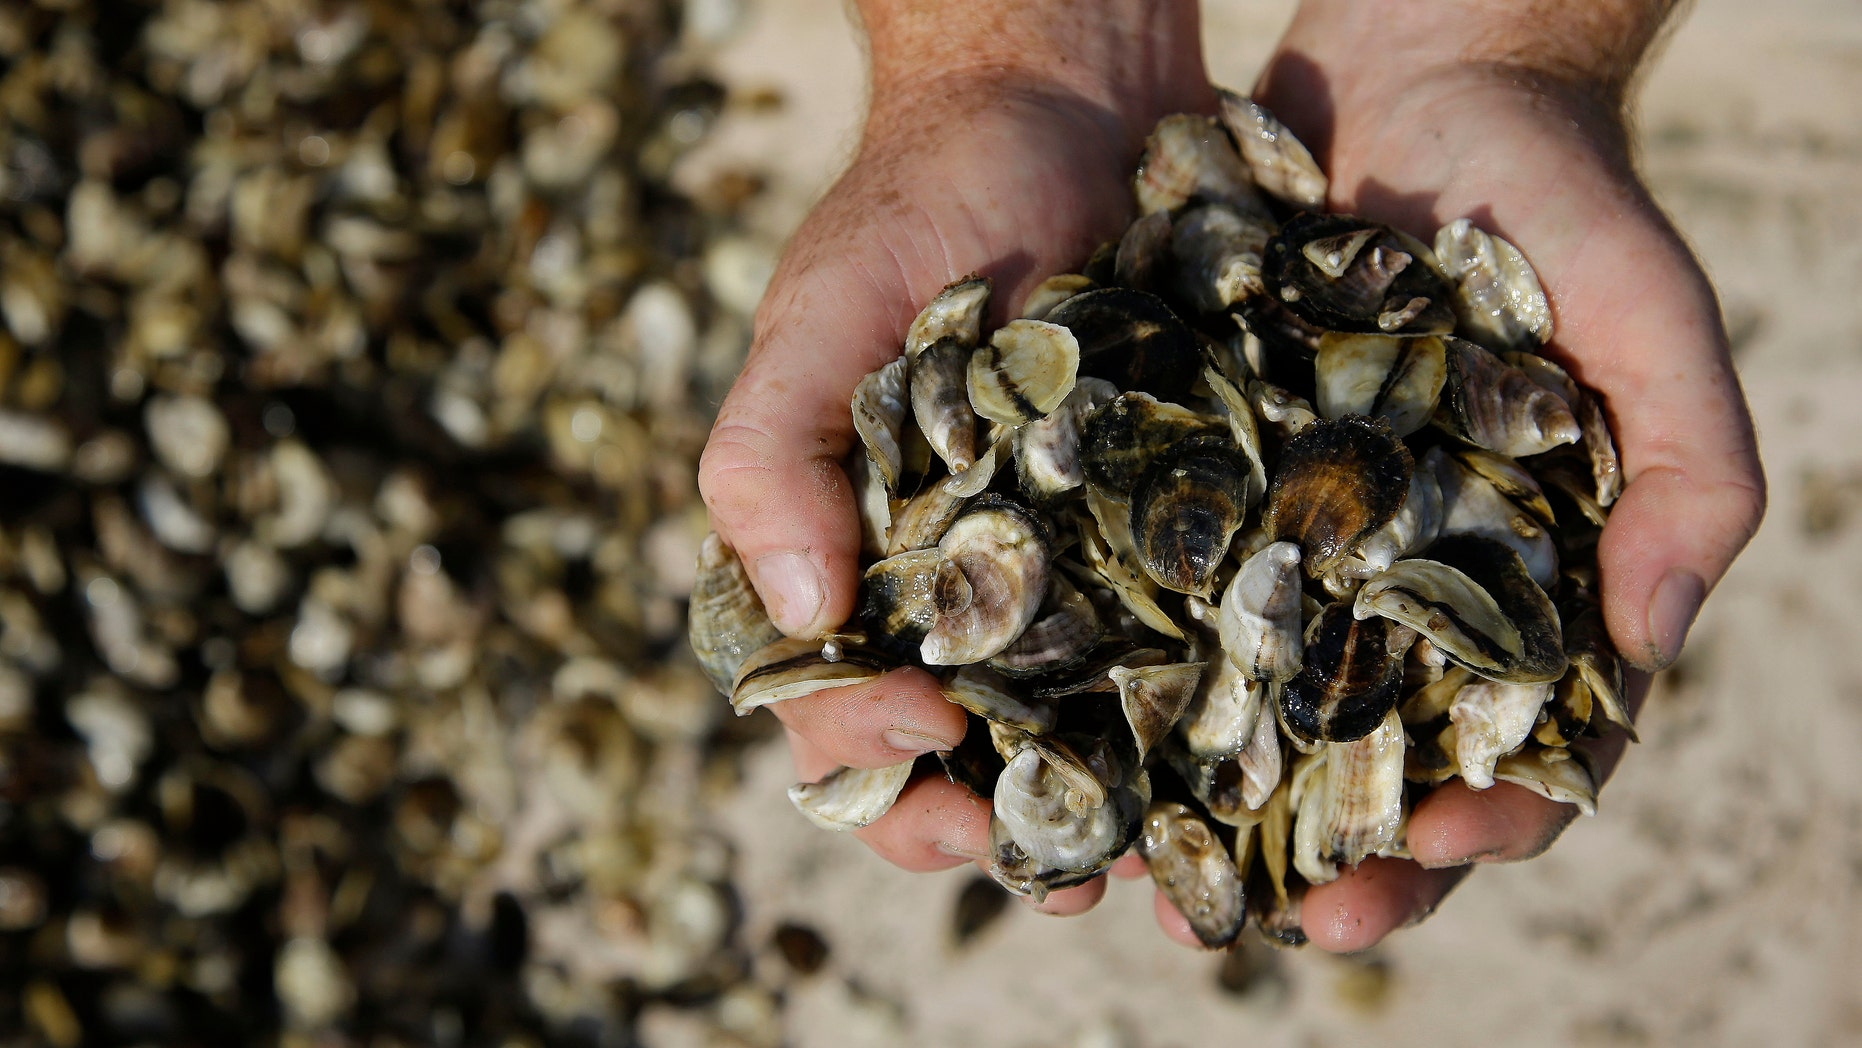 Oyster cultivator Don Merry holds his oyster seed before spreading the seed into the waters of Duxbury Bay in Duxbury, Mass. Oyster harvesting on Massachusetts' South Shore has been closed since Aug. 30, 2013 due to bacterial contamination from the Vibrio parahaemolyticus bacteria and may remain closed until mid-October. (AP Photo/Stephan Savoia)